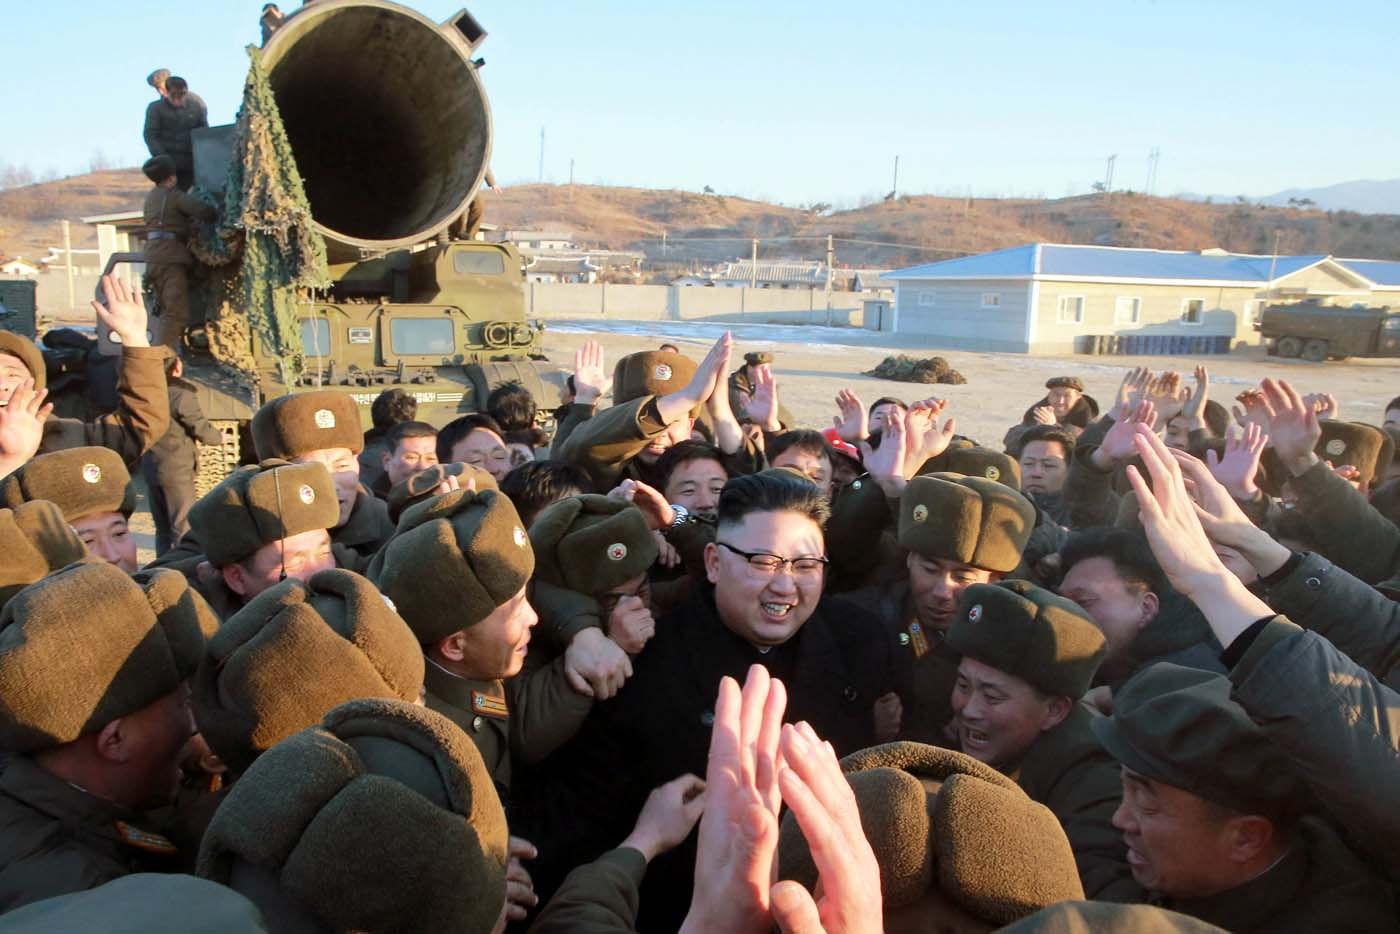 North Korean leader Kim Jong Un guides the test-fire of Pukguksong-2 on the spot, in this undated photo released by North Korea's Korean Central News Agency (KCNA) in Pyongyang February 13, 2017. KCNA/Handout via Reuters ATTENTION EDITORS - THIS PICTURE WAS PROVIDED BY A THIRD PARTY. REUTERS IS UNABLE TO INDEPENDENTLY VERIFY THE AUTHENTICITY, CONTENT, LOCATION OR DATE OF THIS IMAGE. FOR EDITORIAL USE ONLY. NO THIRD PARTY SALES. SOUTH KOREA OUT.  THIS PICTURE IS DISTRIBUTED EXACTLY AS RECEIVED BY REUTERS, AS A SERVICE TO CLIENTS.      TPX IMAGES OF THE DAY